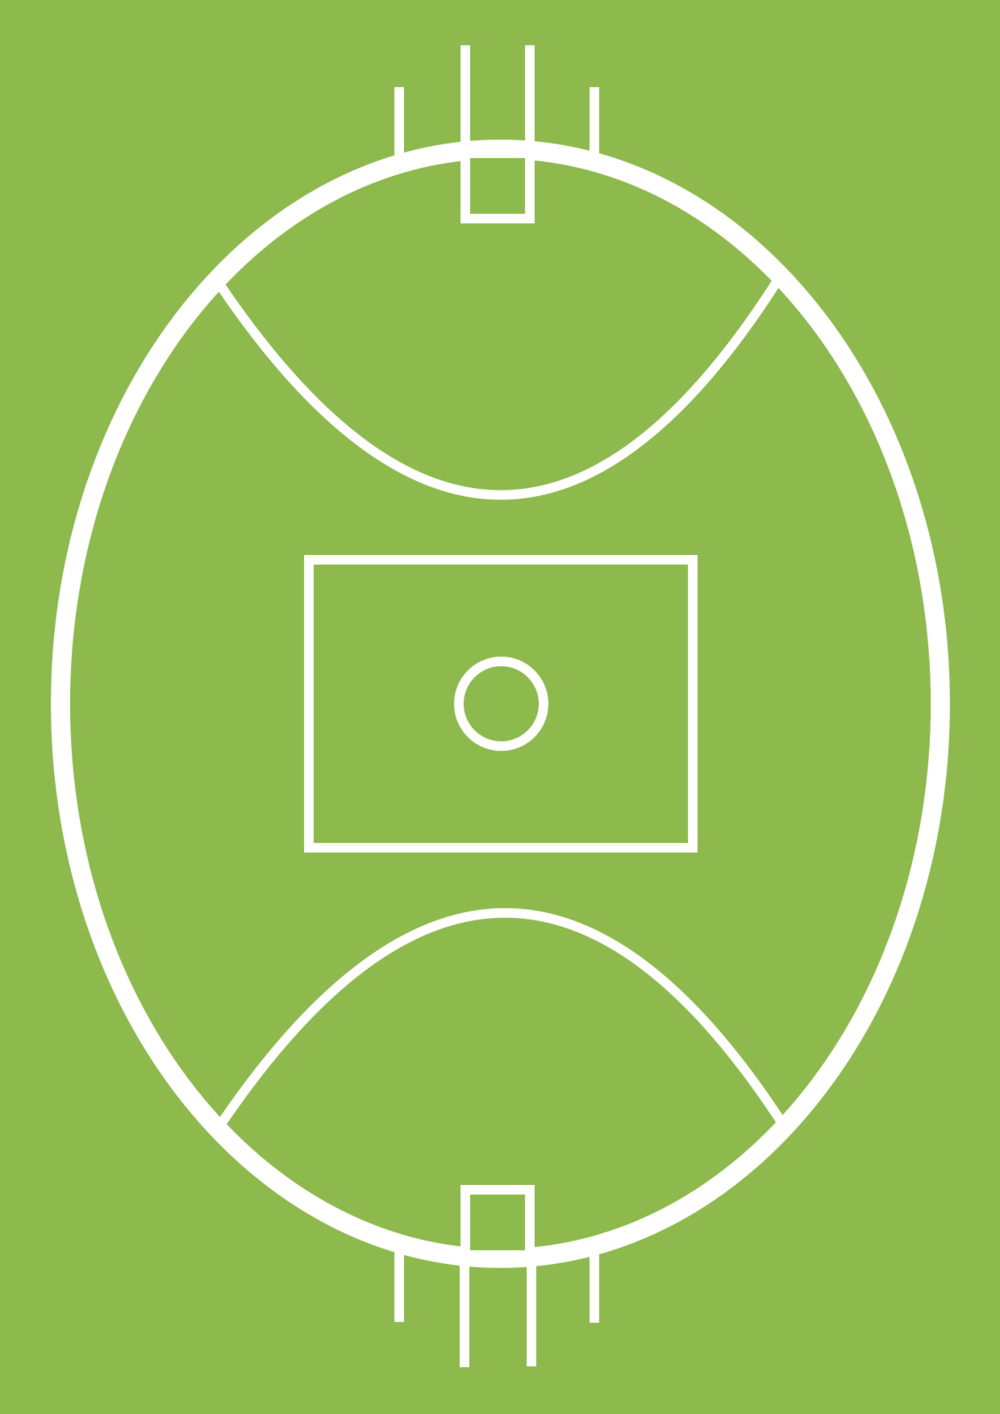 The layout of the field in Australian rules football